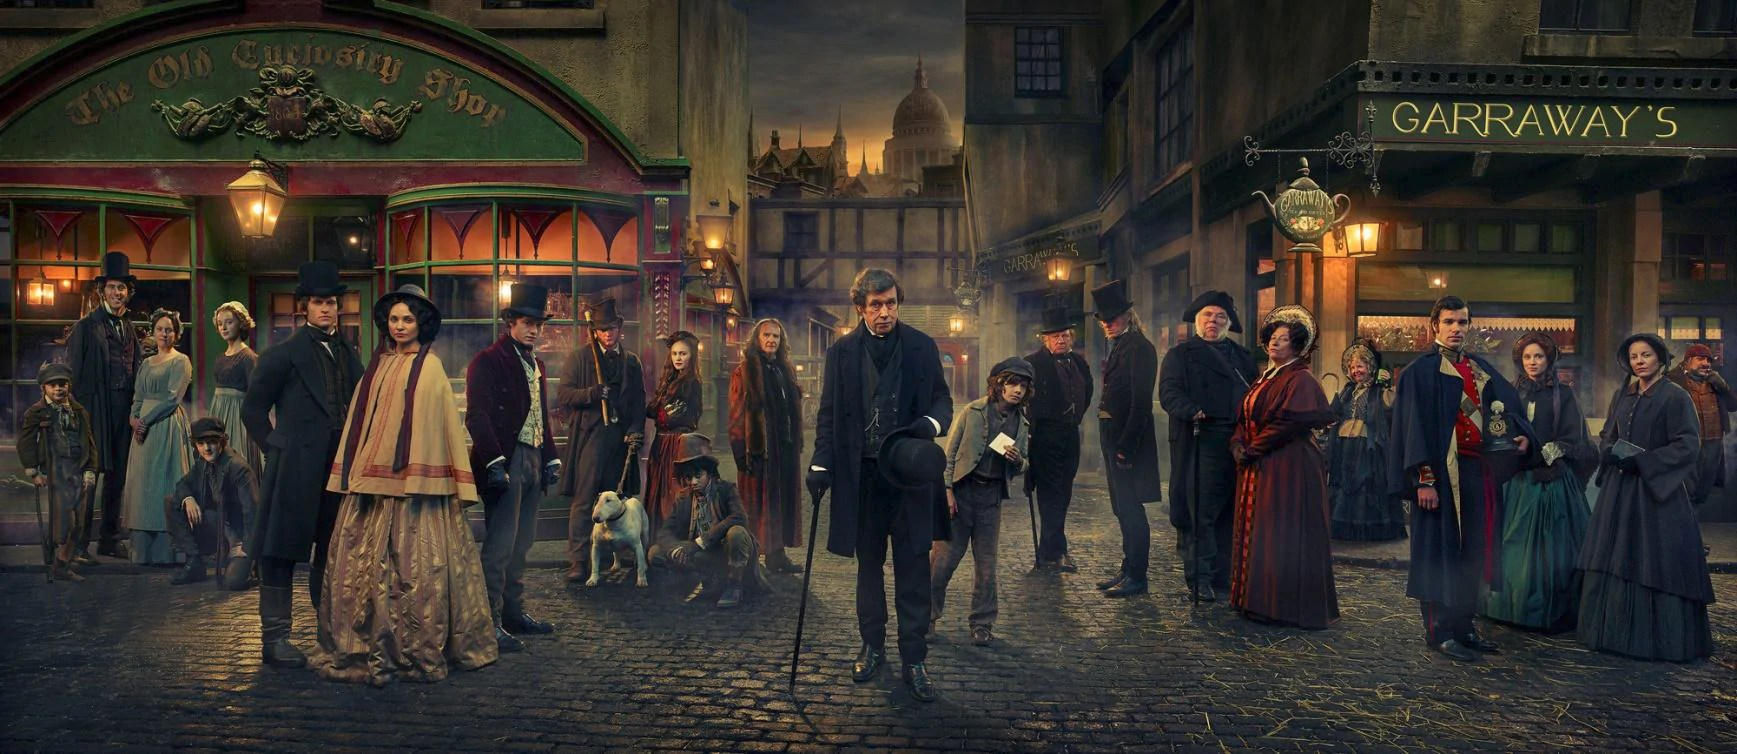 Dickensian: Behind the scenes of the BBC drama series